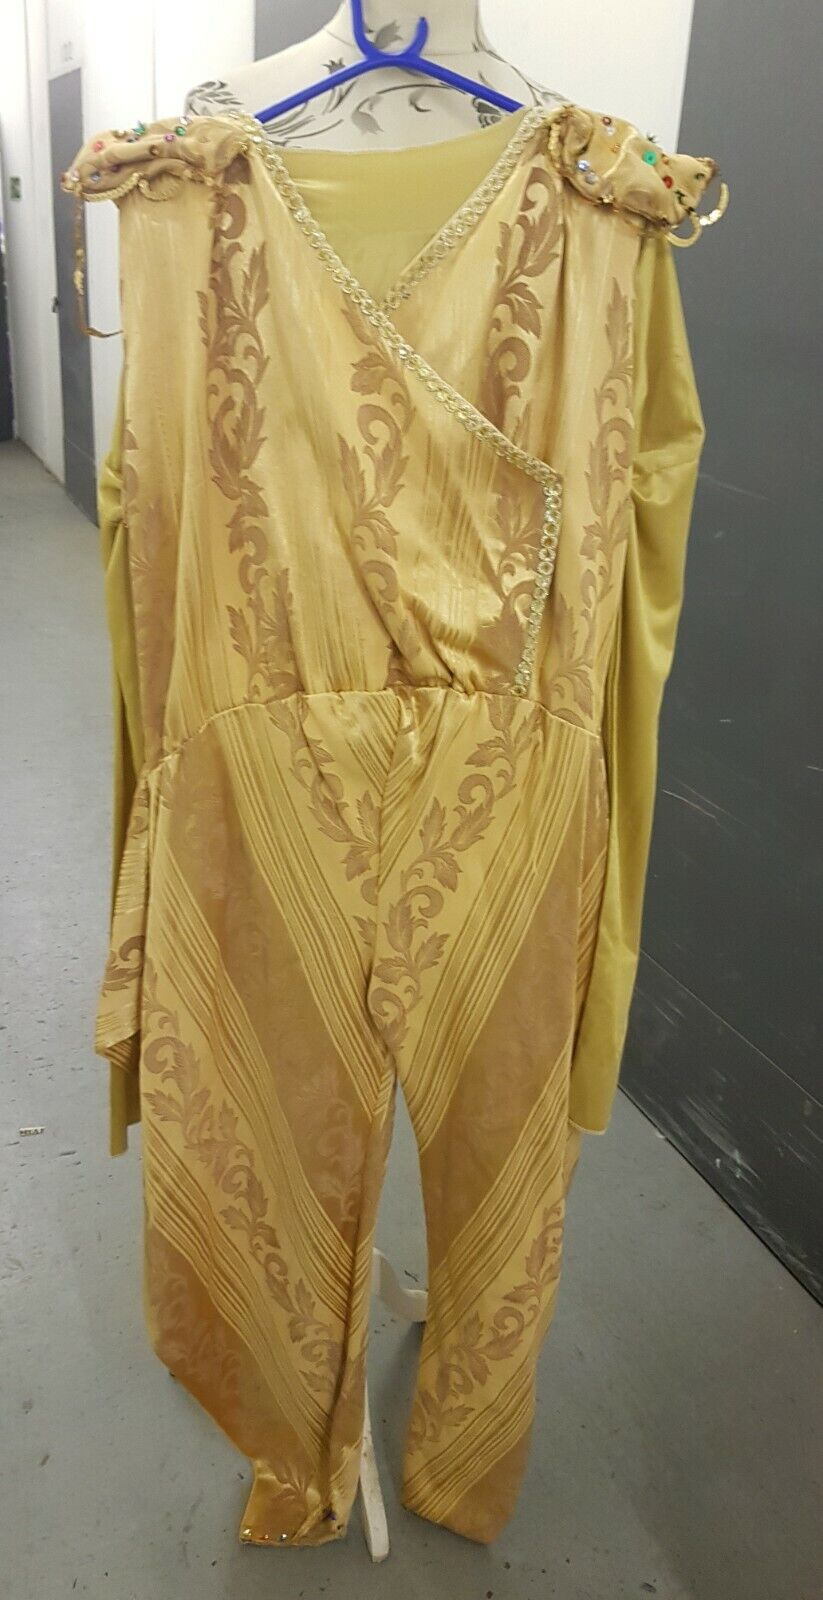 LARGE MALE GENIE OR DAME COSTUME FOR PANTOMIME/FAIRY TALE ALADDIN